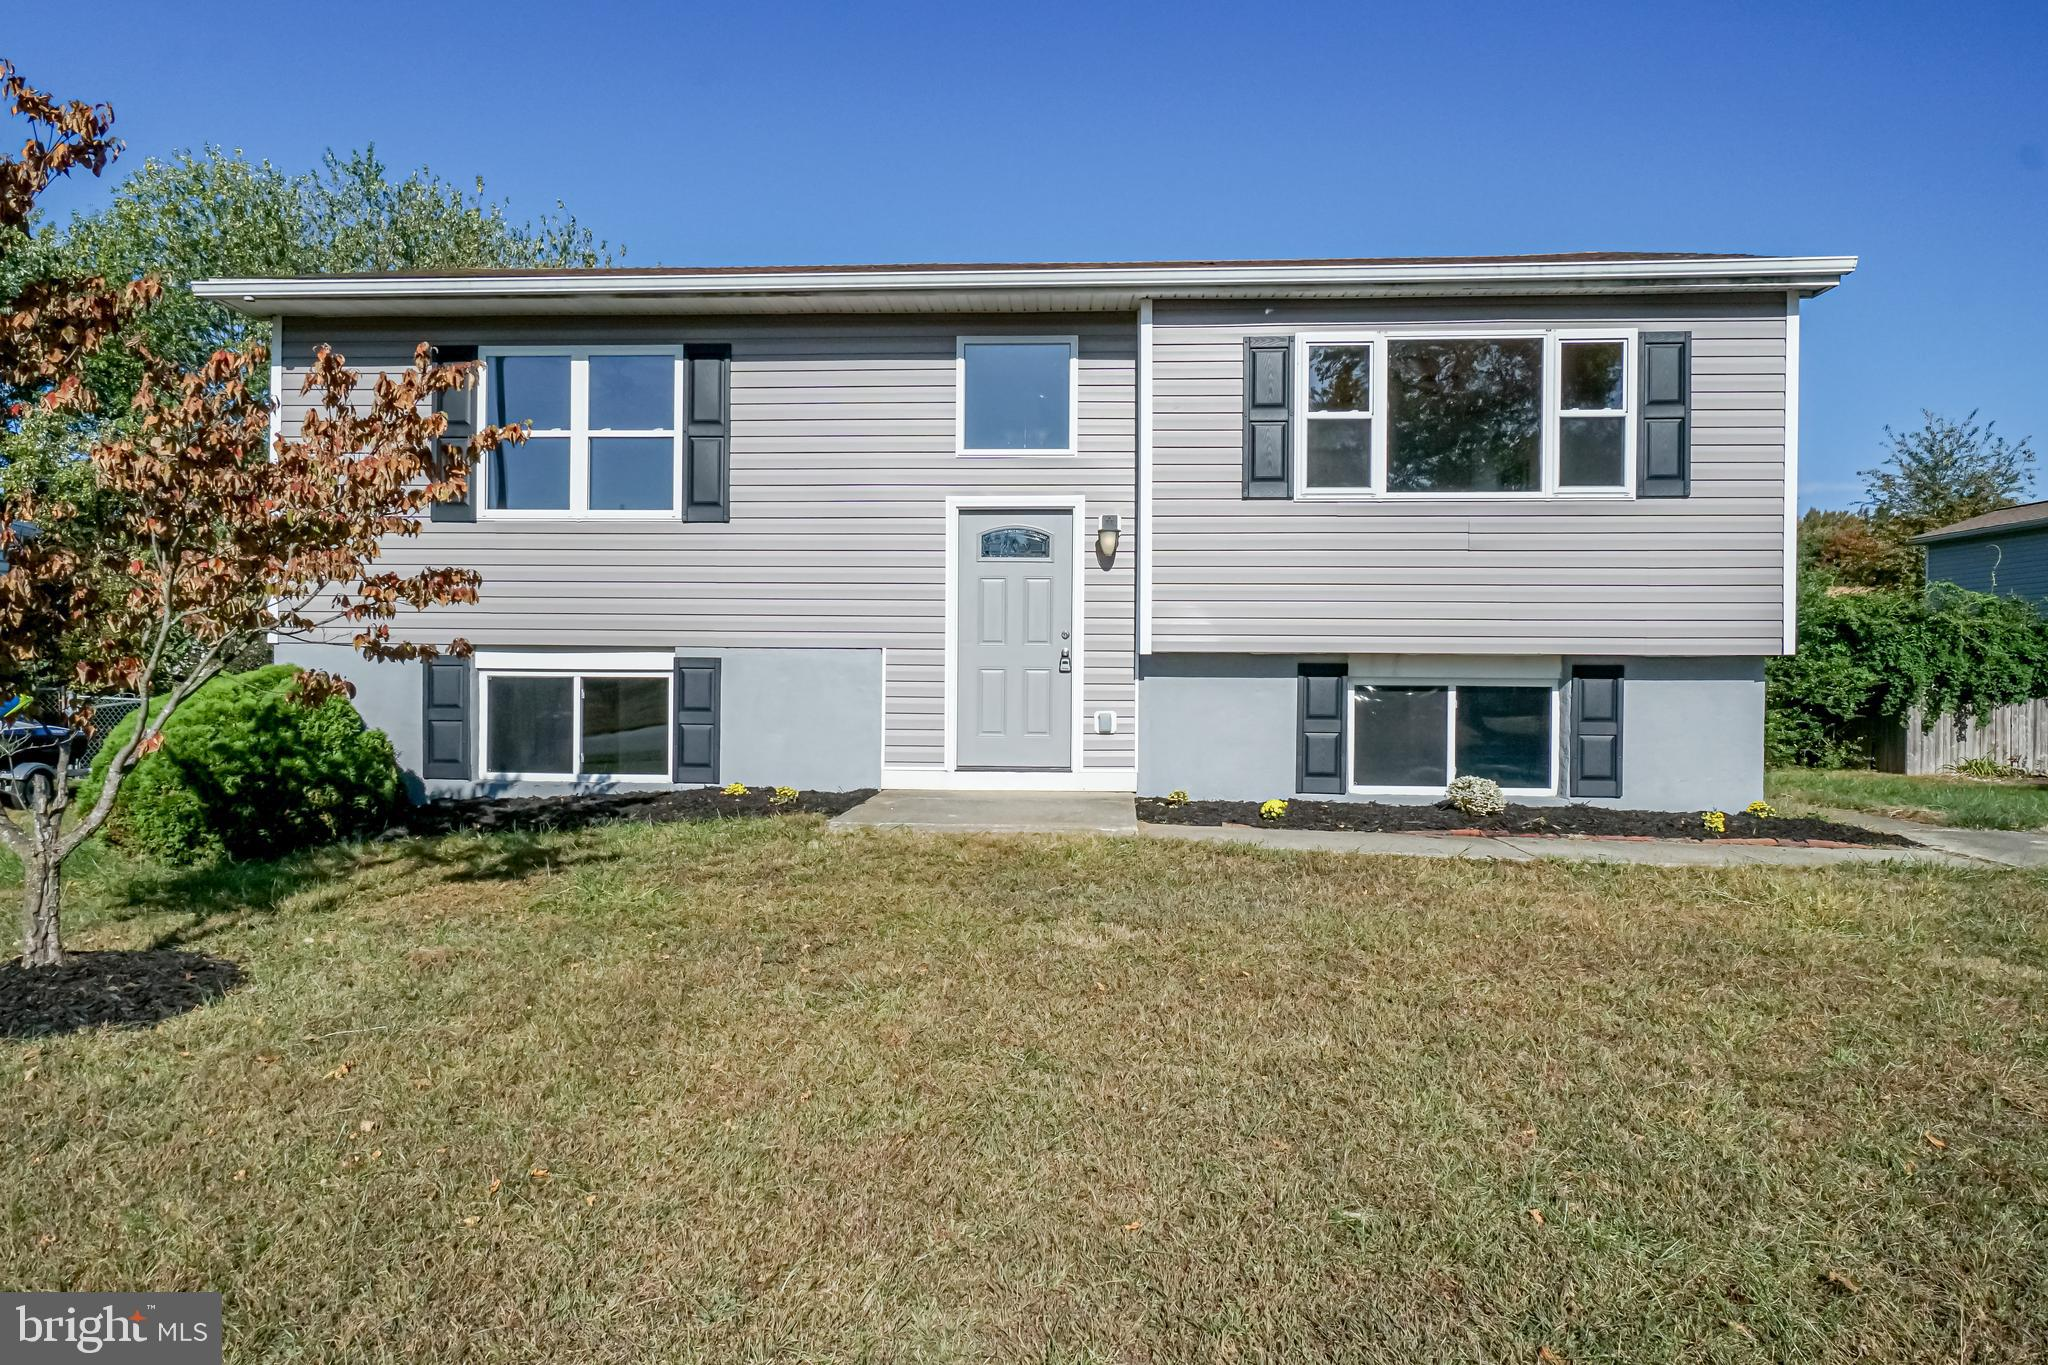 Beautifully renovated 1800+ sqft home featuring 4 bedrooms and 2 full bathrooms. All new kitchen app